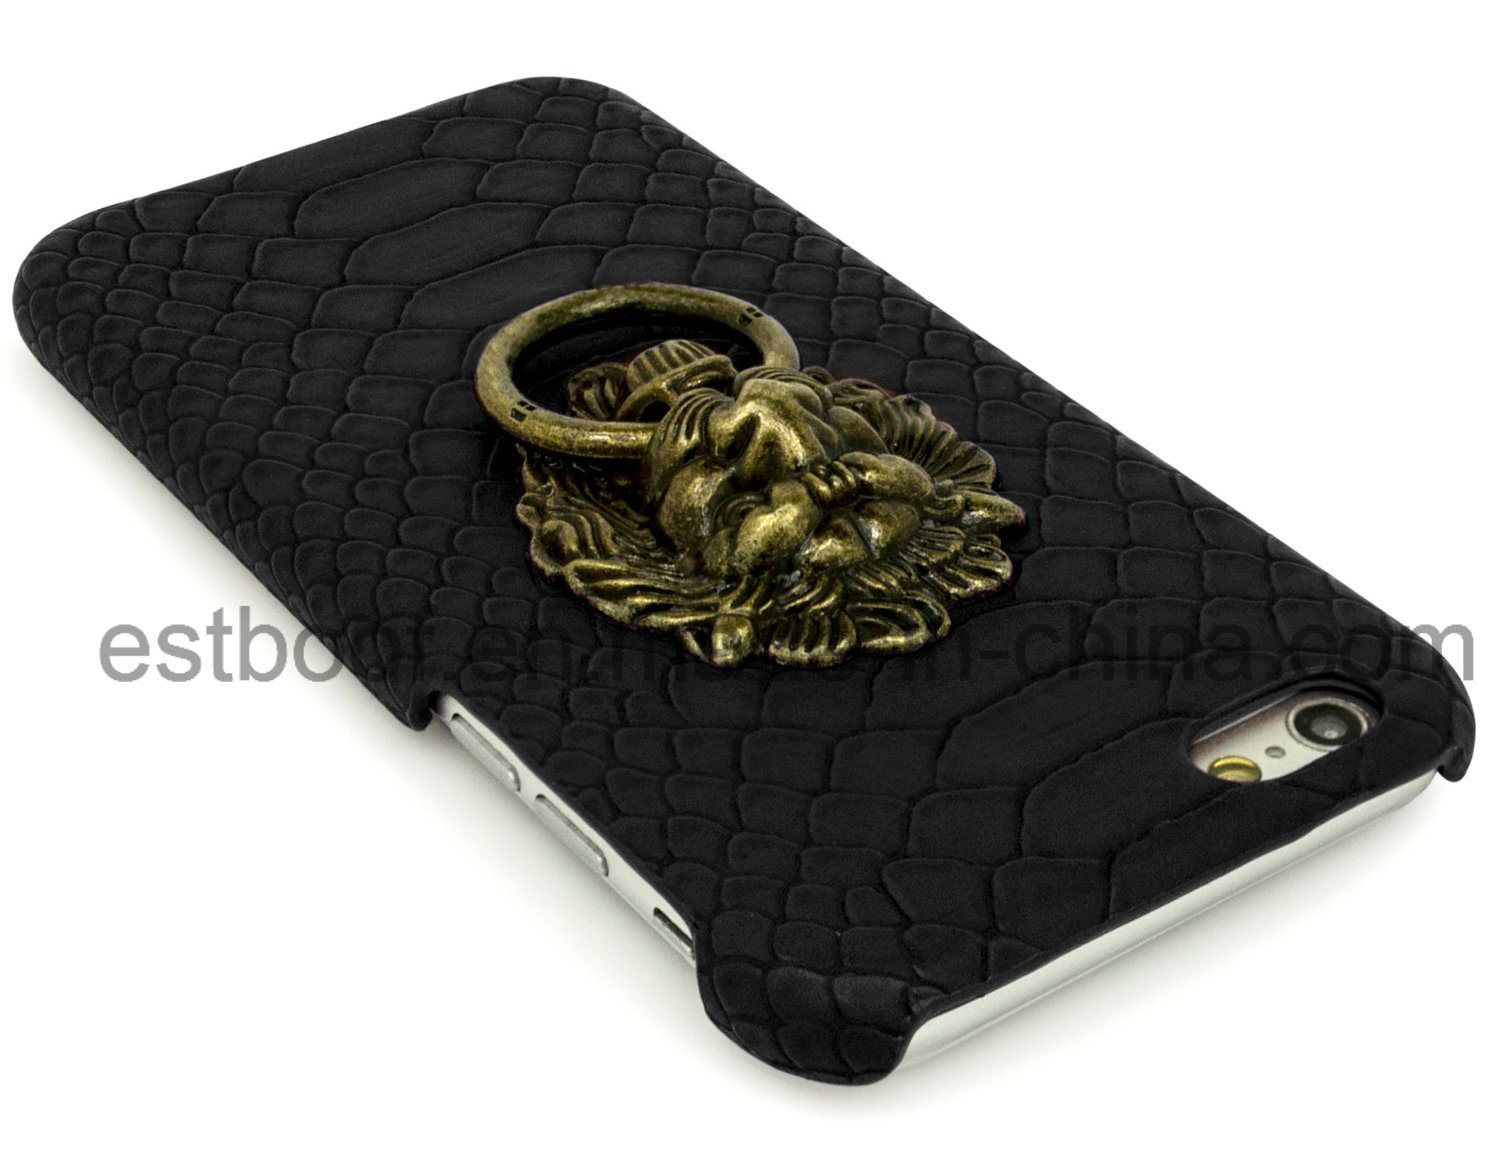 OEM PC Mobile Phone Case for iPhone 6/6/7